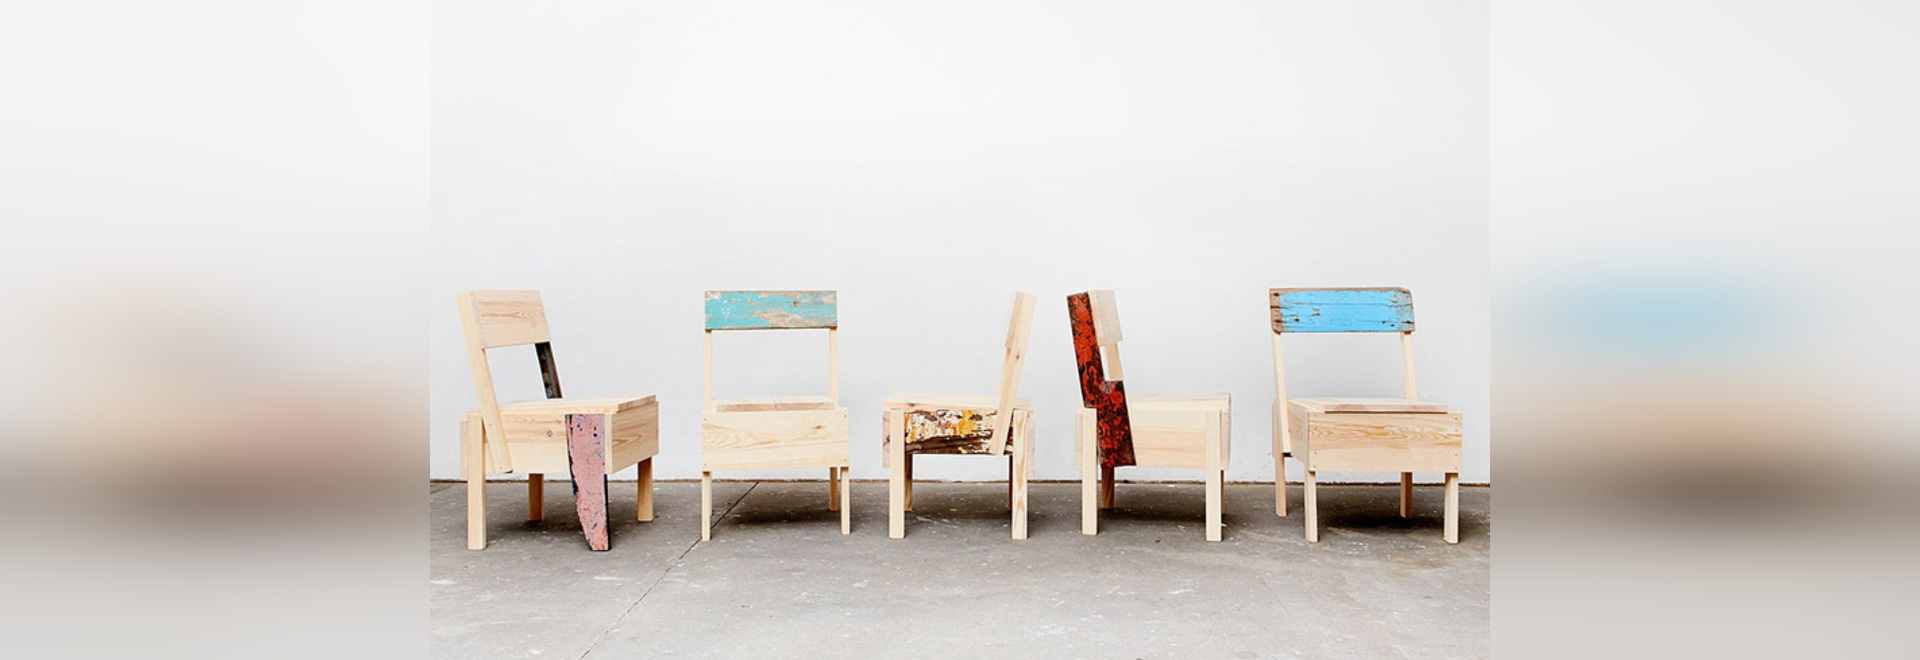 Enzo Mari grants Berlin refugee organisation rights to reproduce his furniture